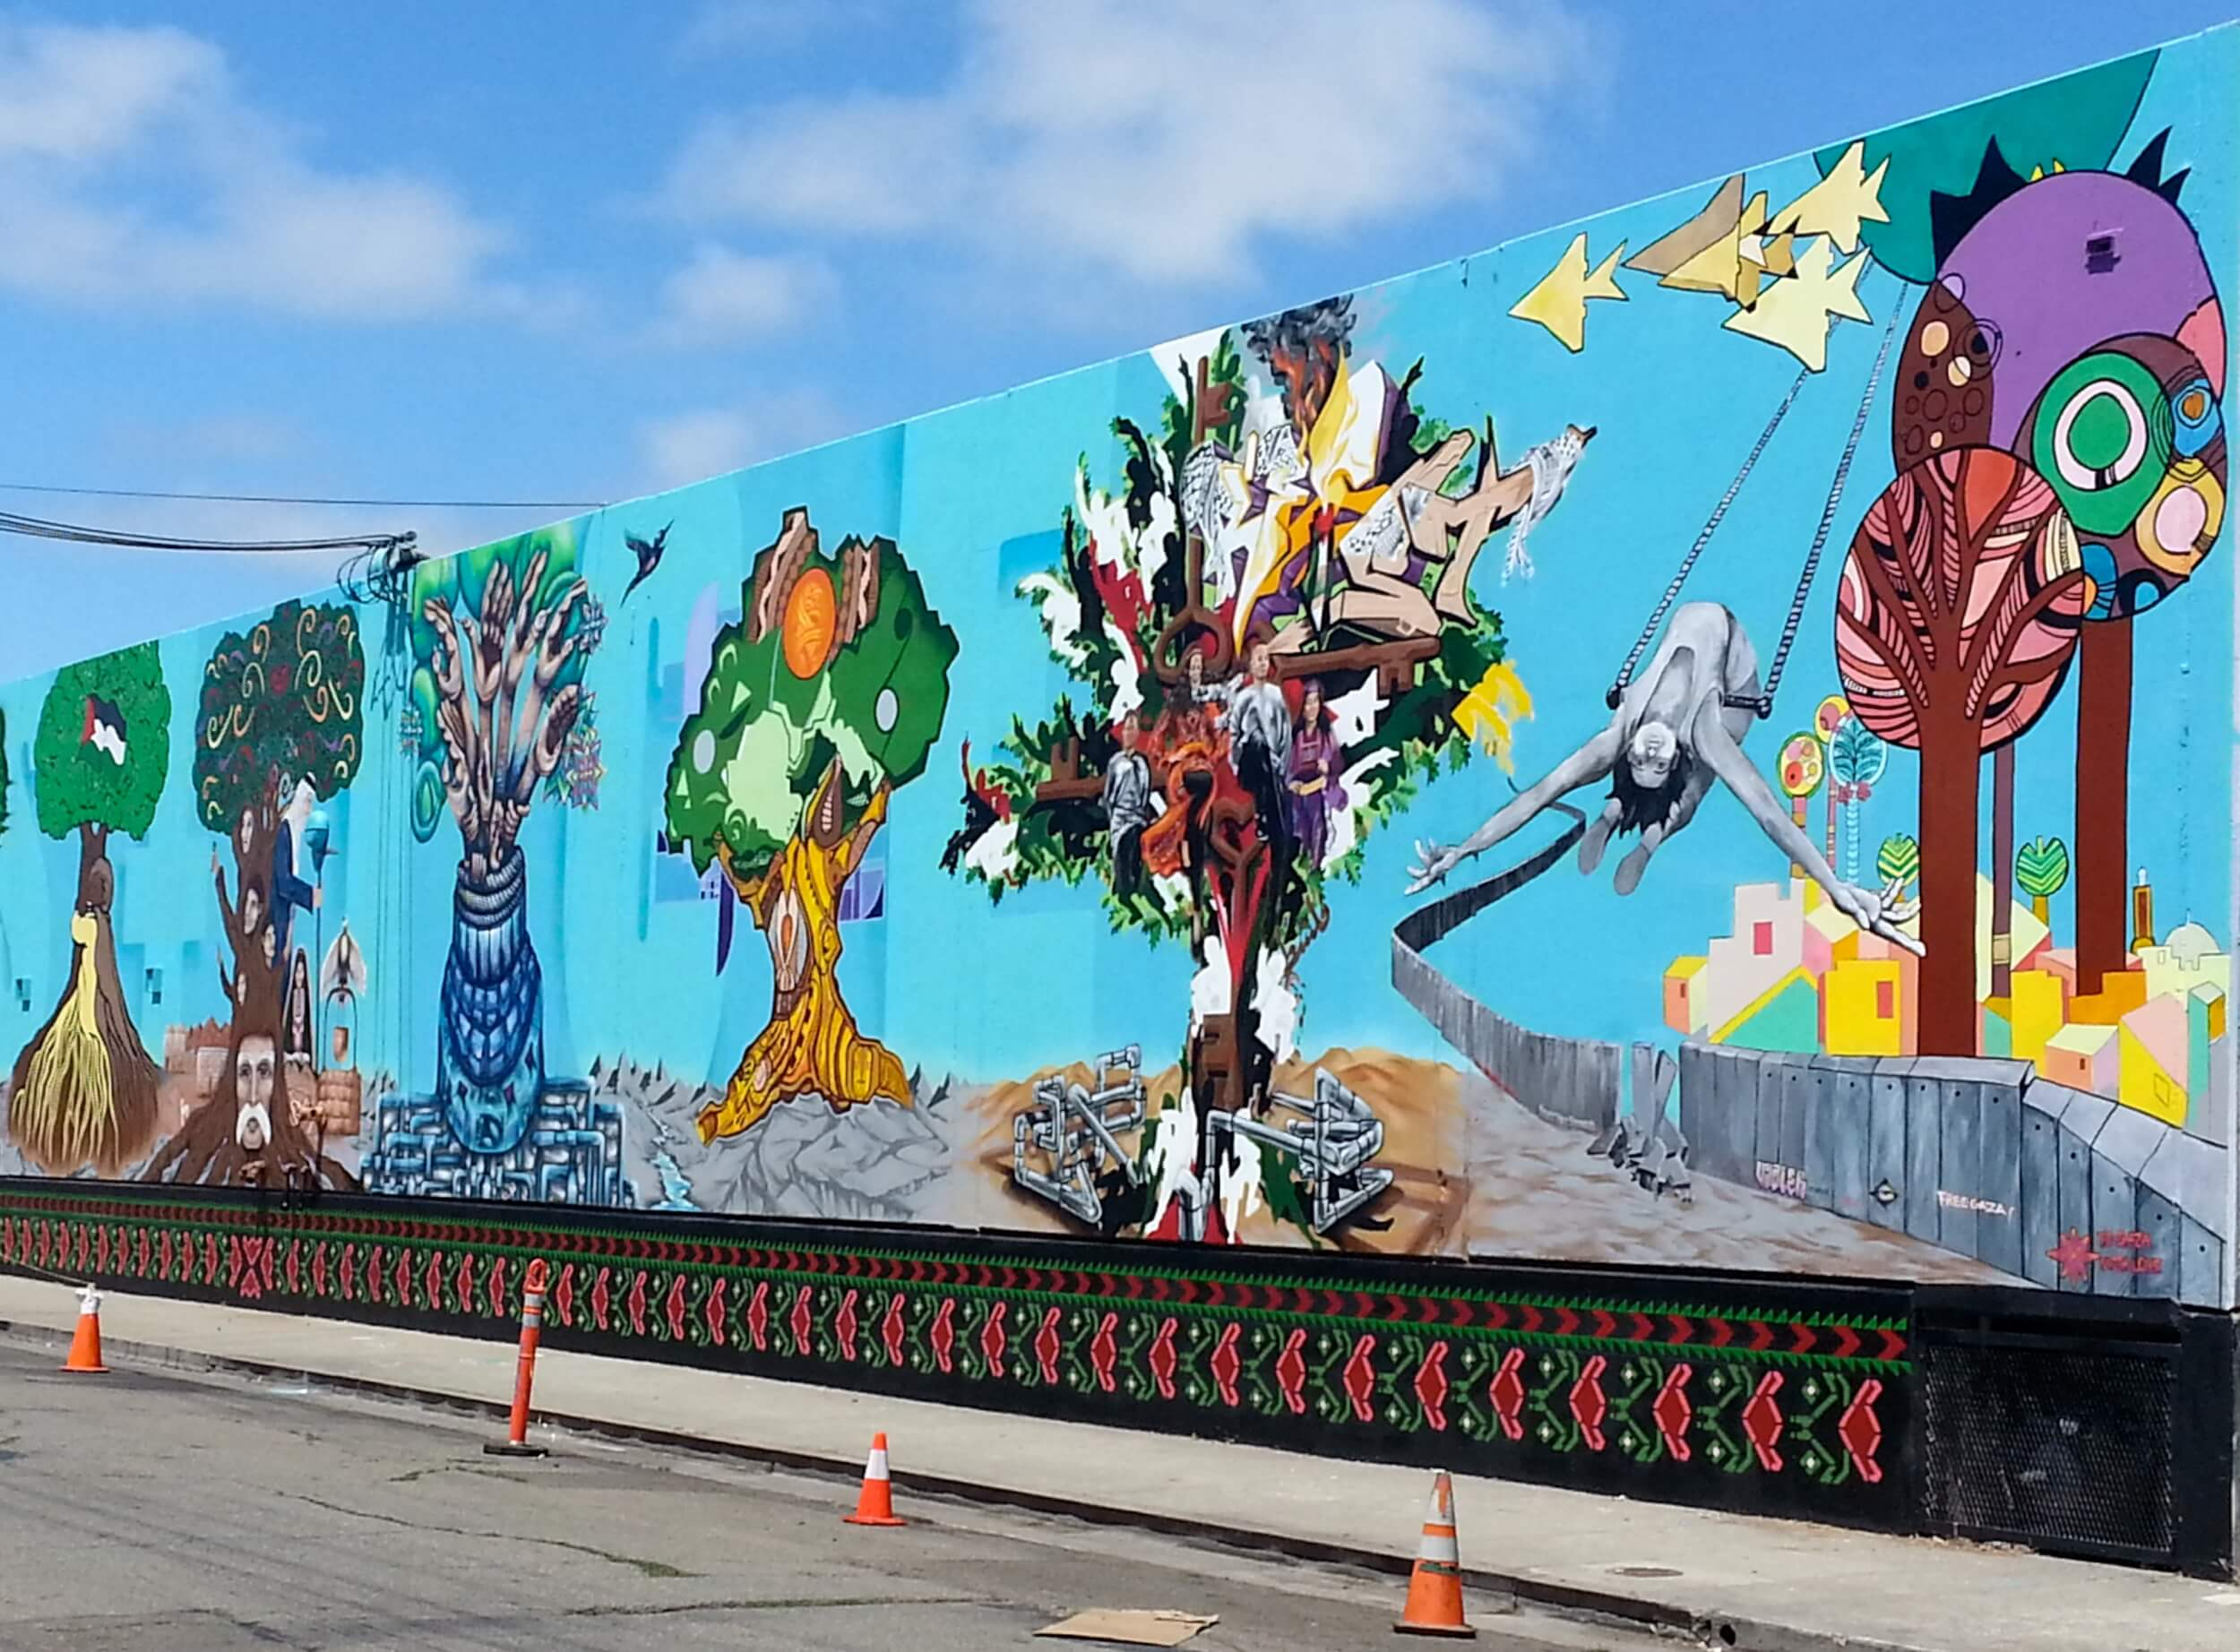 Oakland Palestine Solidarity Mural unveiled Aug. 10, 2014 (photo: Henry Norr)